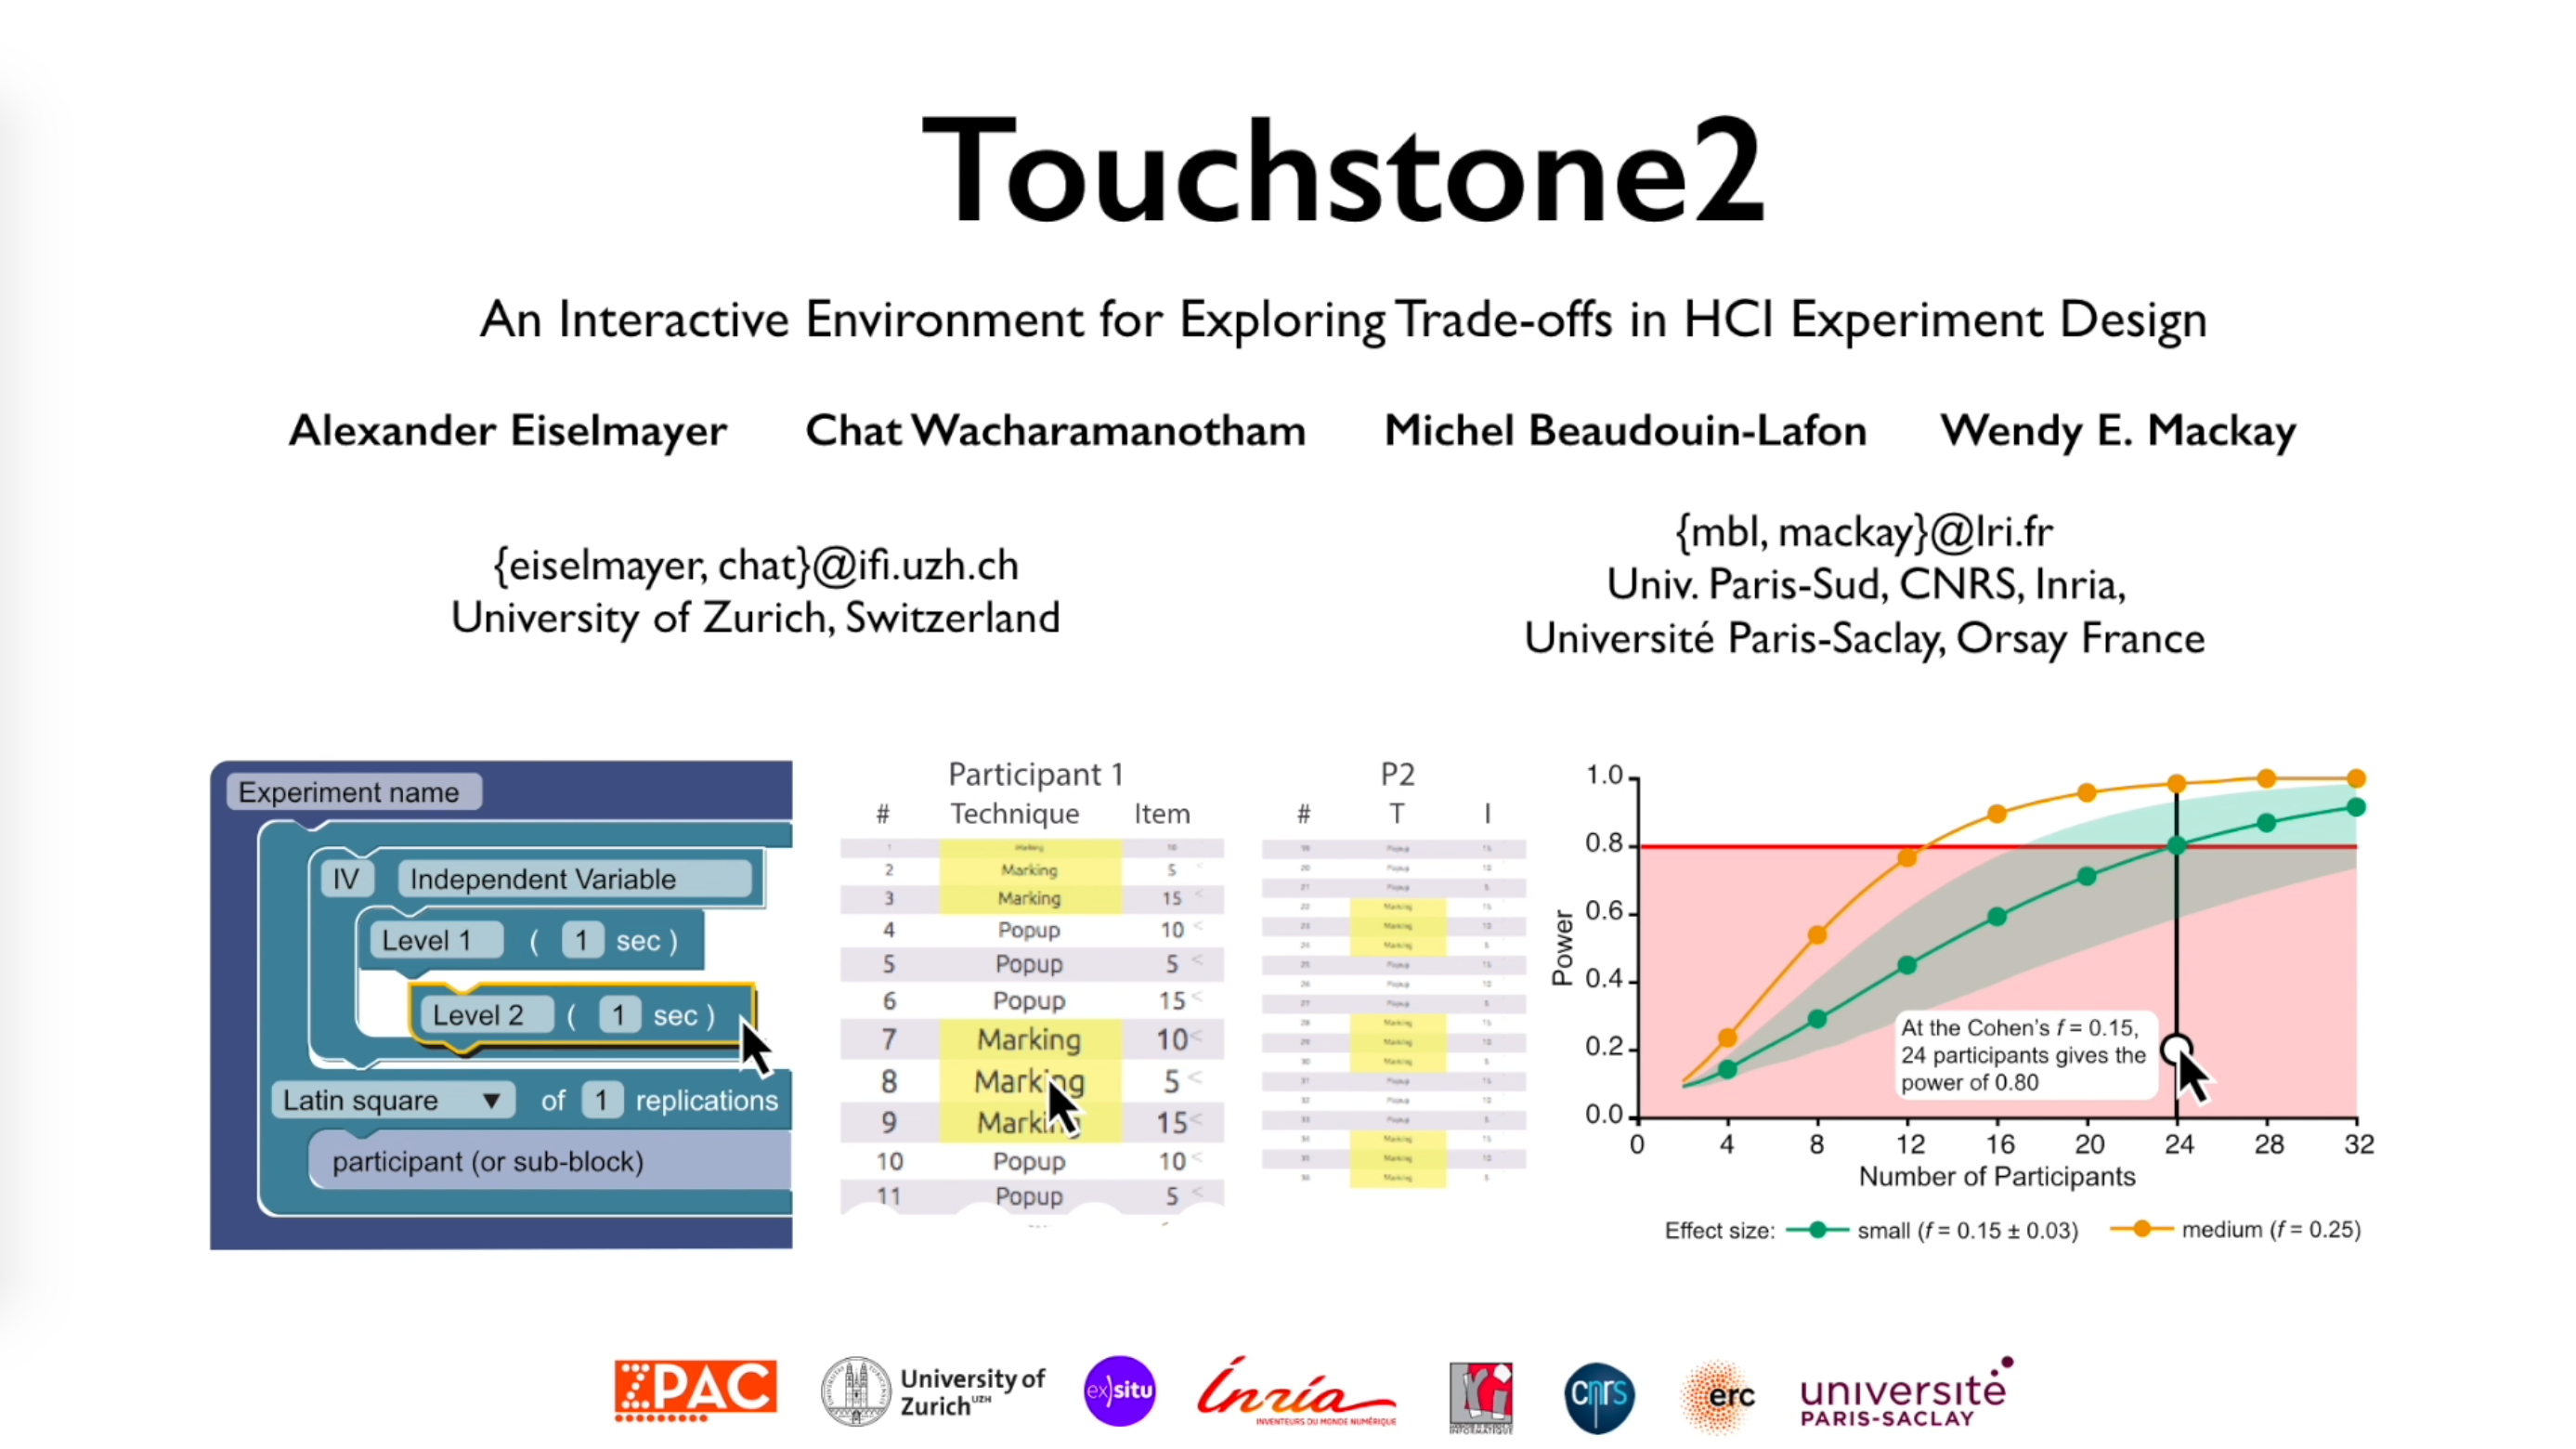 ic05 - Touchstone2: an interactive environment for exploring trade-offs in HCI experiment design